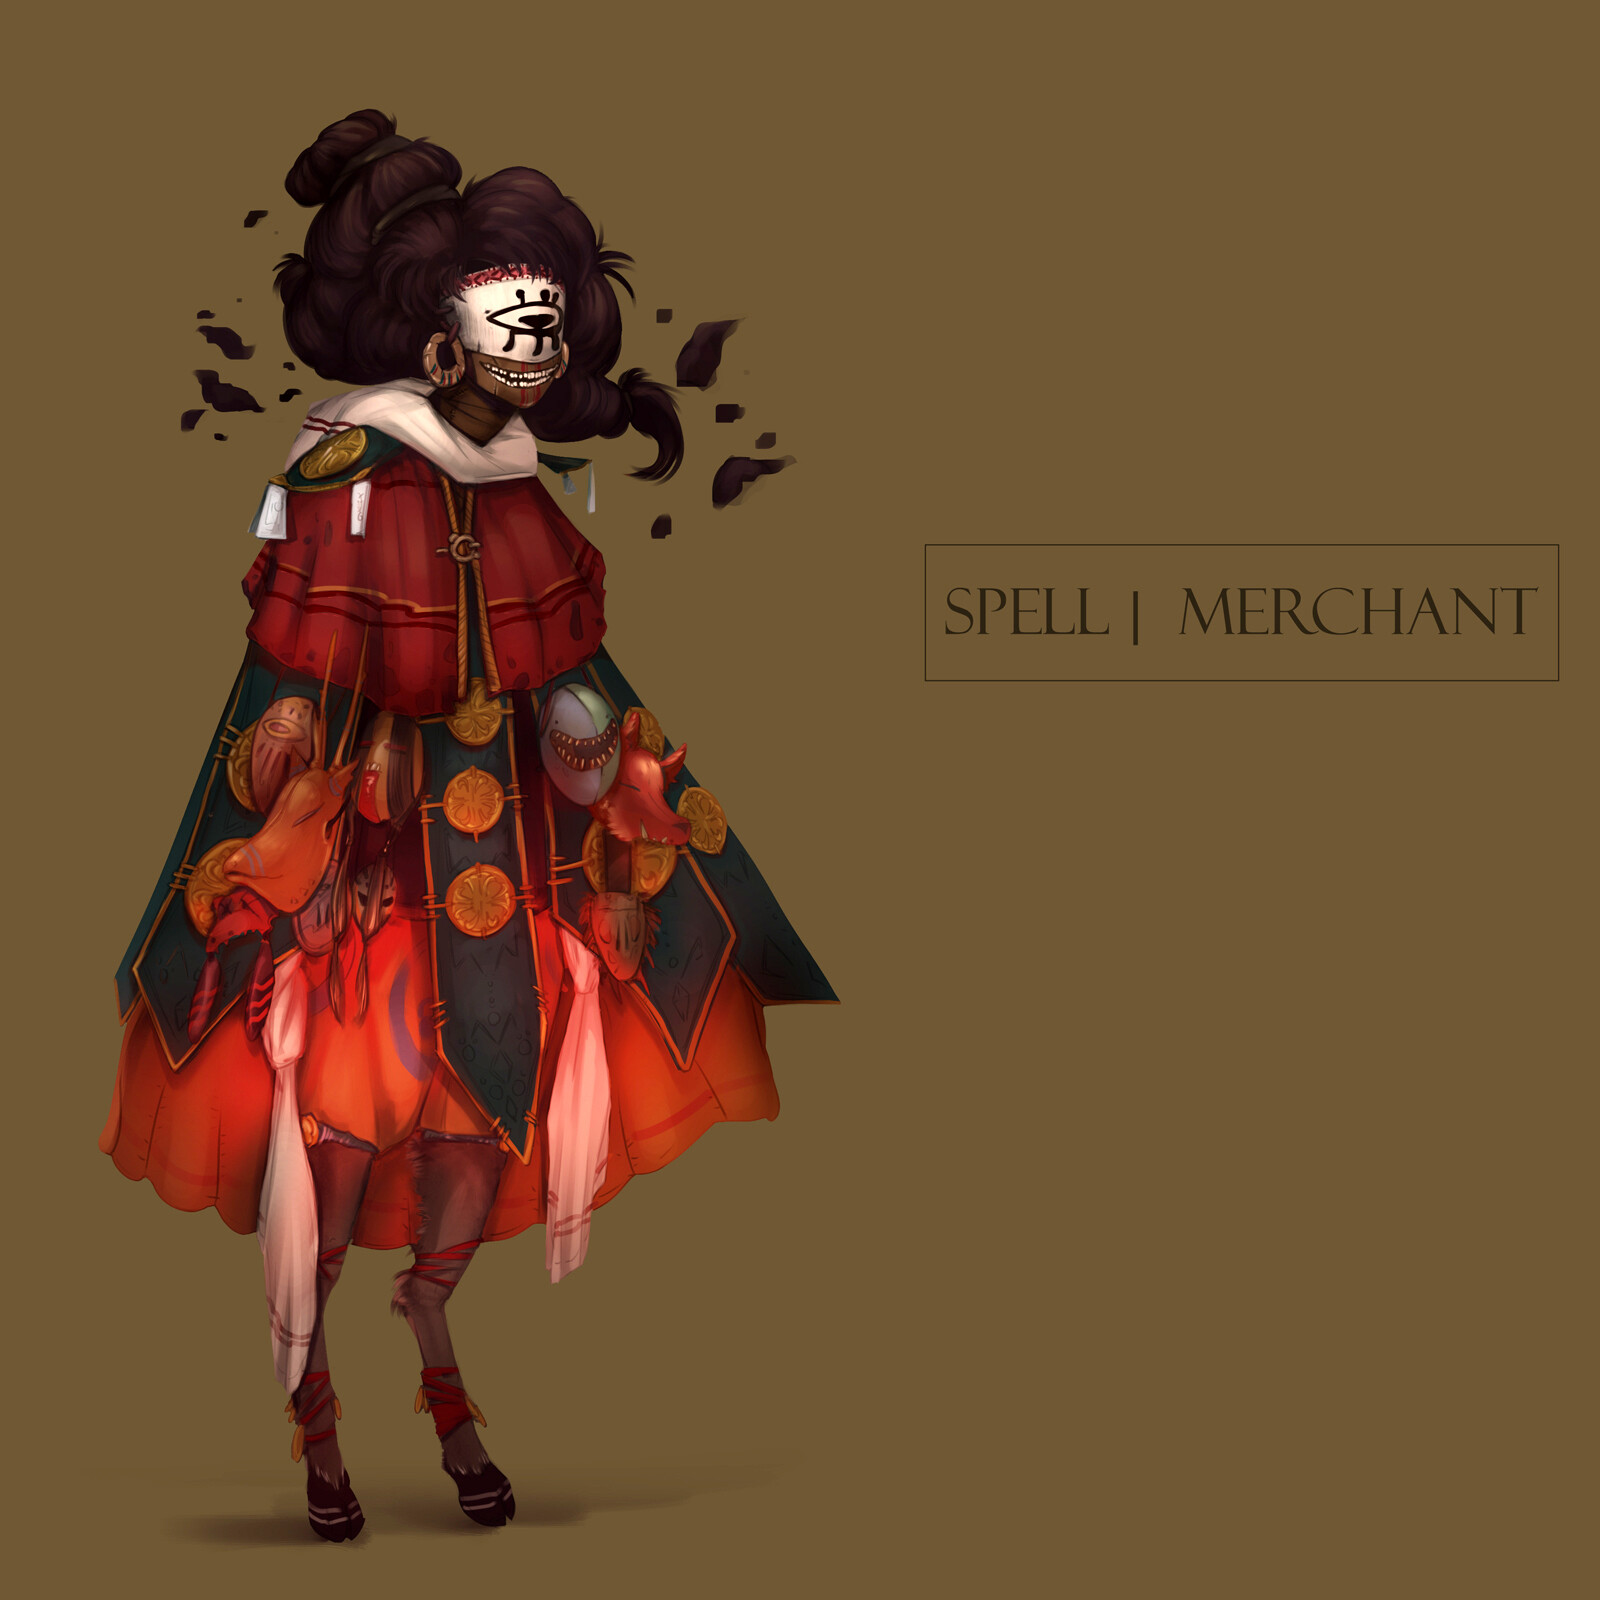 The Yaga and her henchmen (the little masks on her skirt) was the character which has set the tone for the whole project. She acts as a bridge between the strange magic of Lukomor and its protagonist.